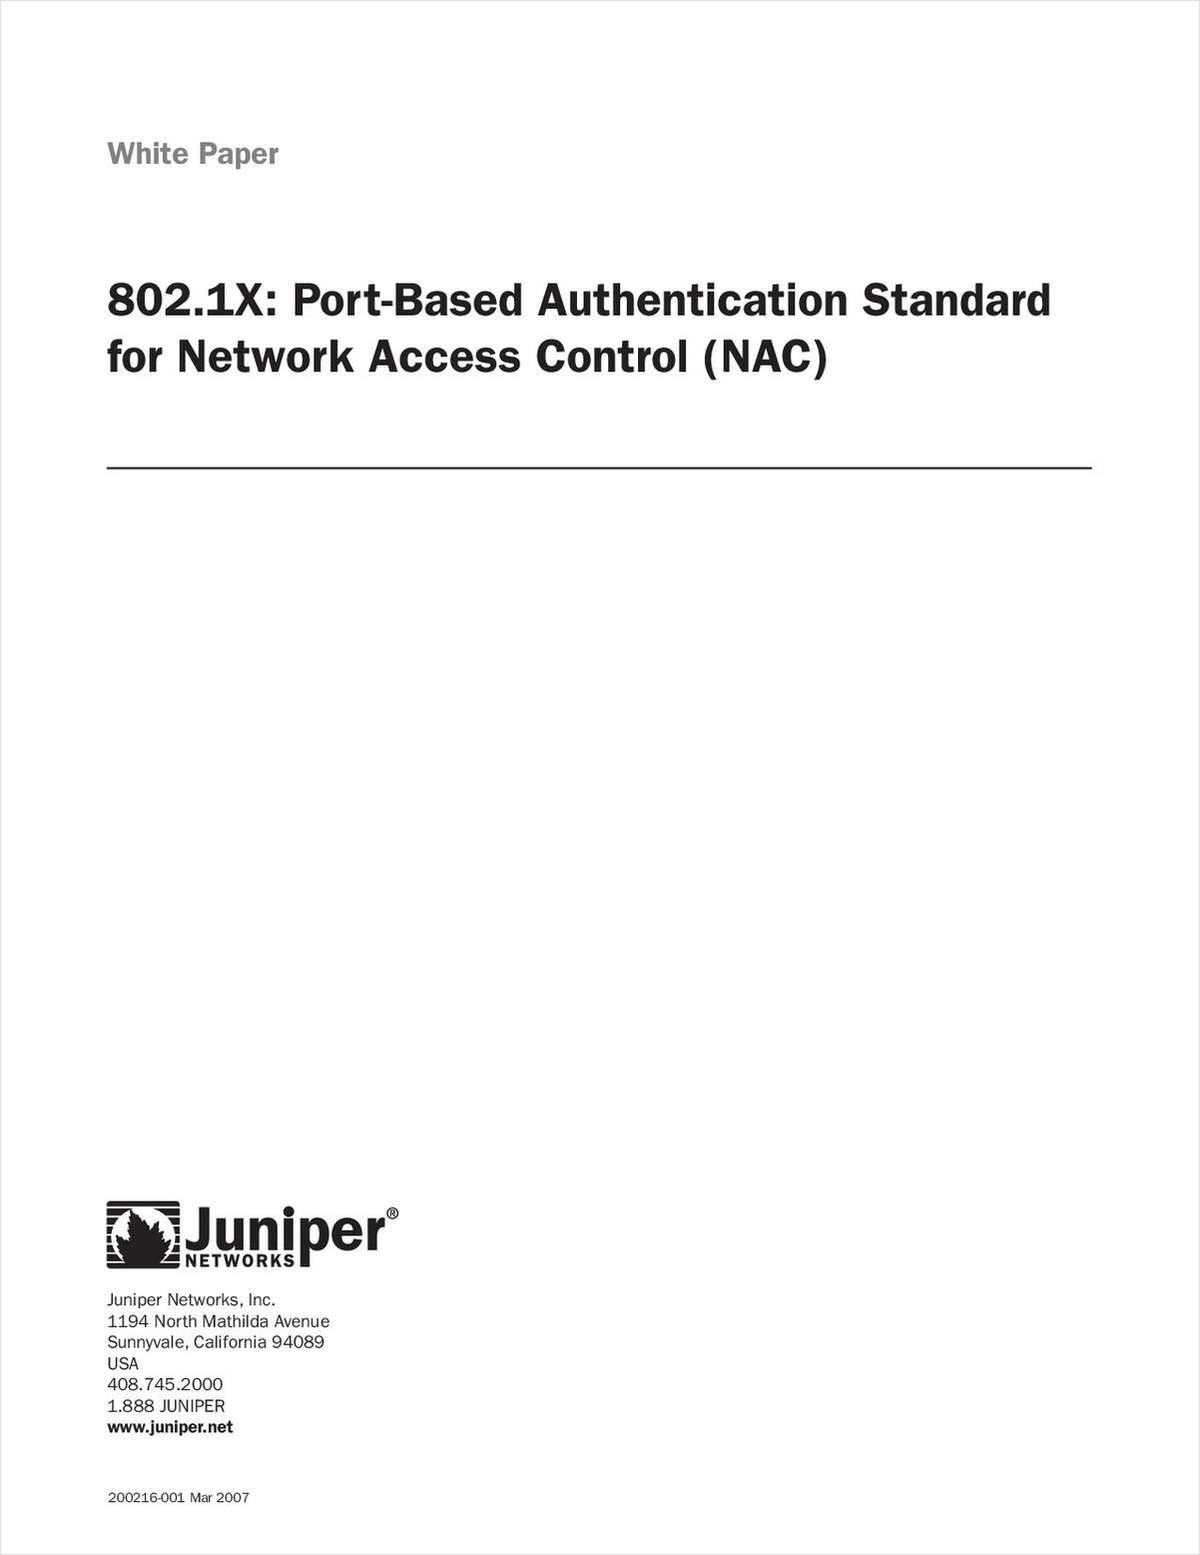 802.1X Authentication Standard for Network Access Control